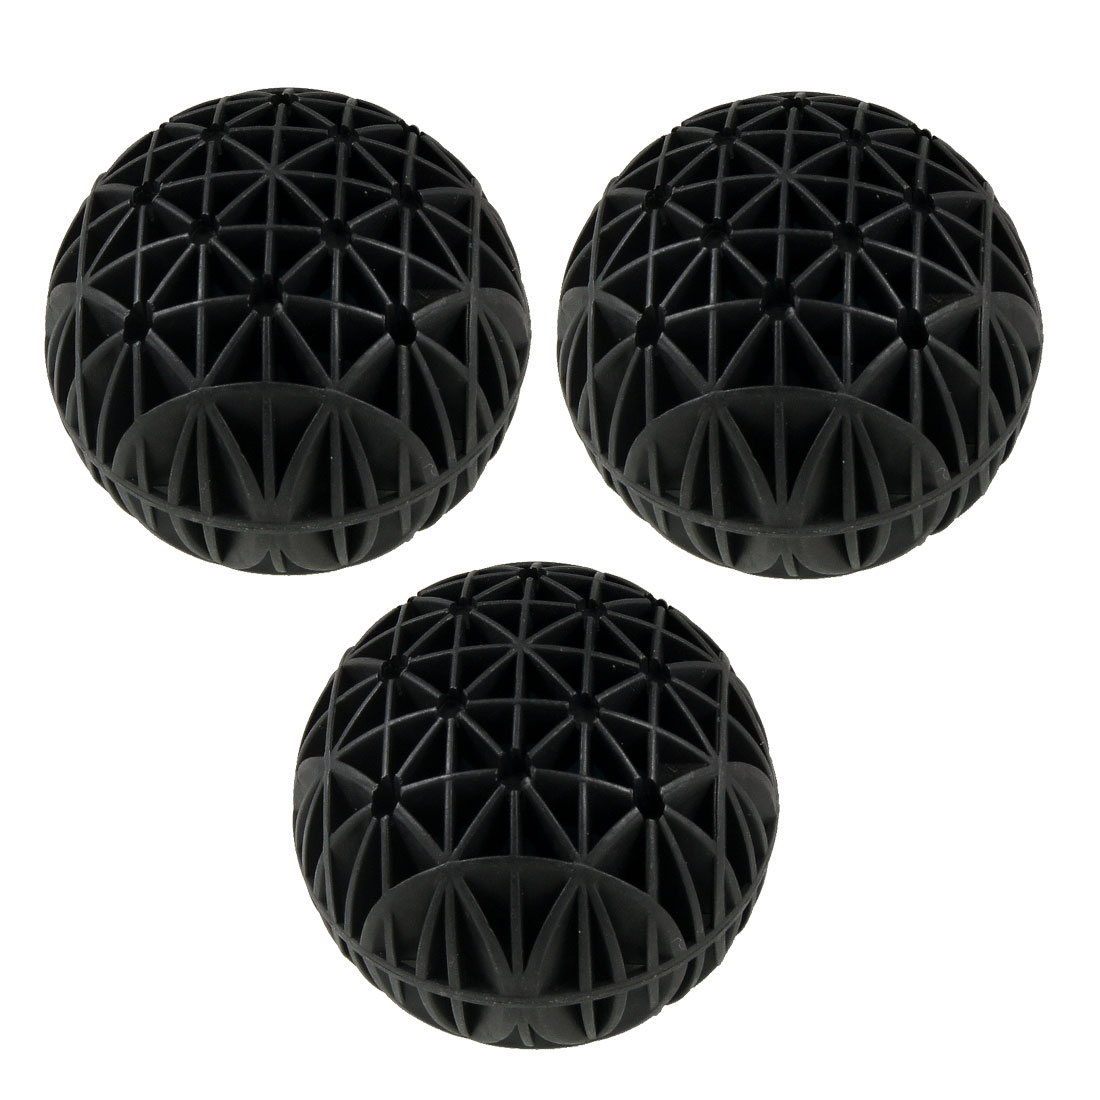 "Aquarium Fish Tank Filter 3.0"" Dia Black Biological Bio Balls 3 Pcs"